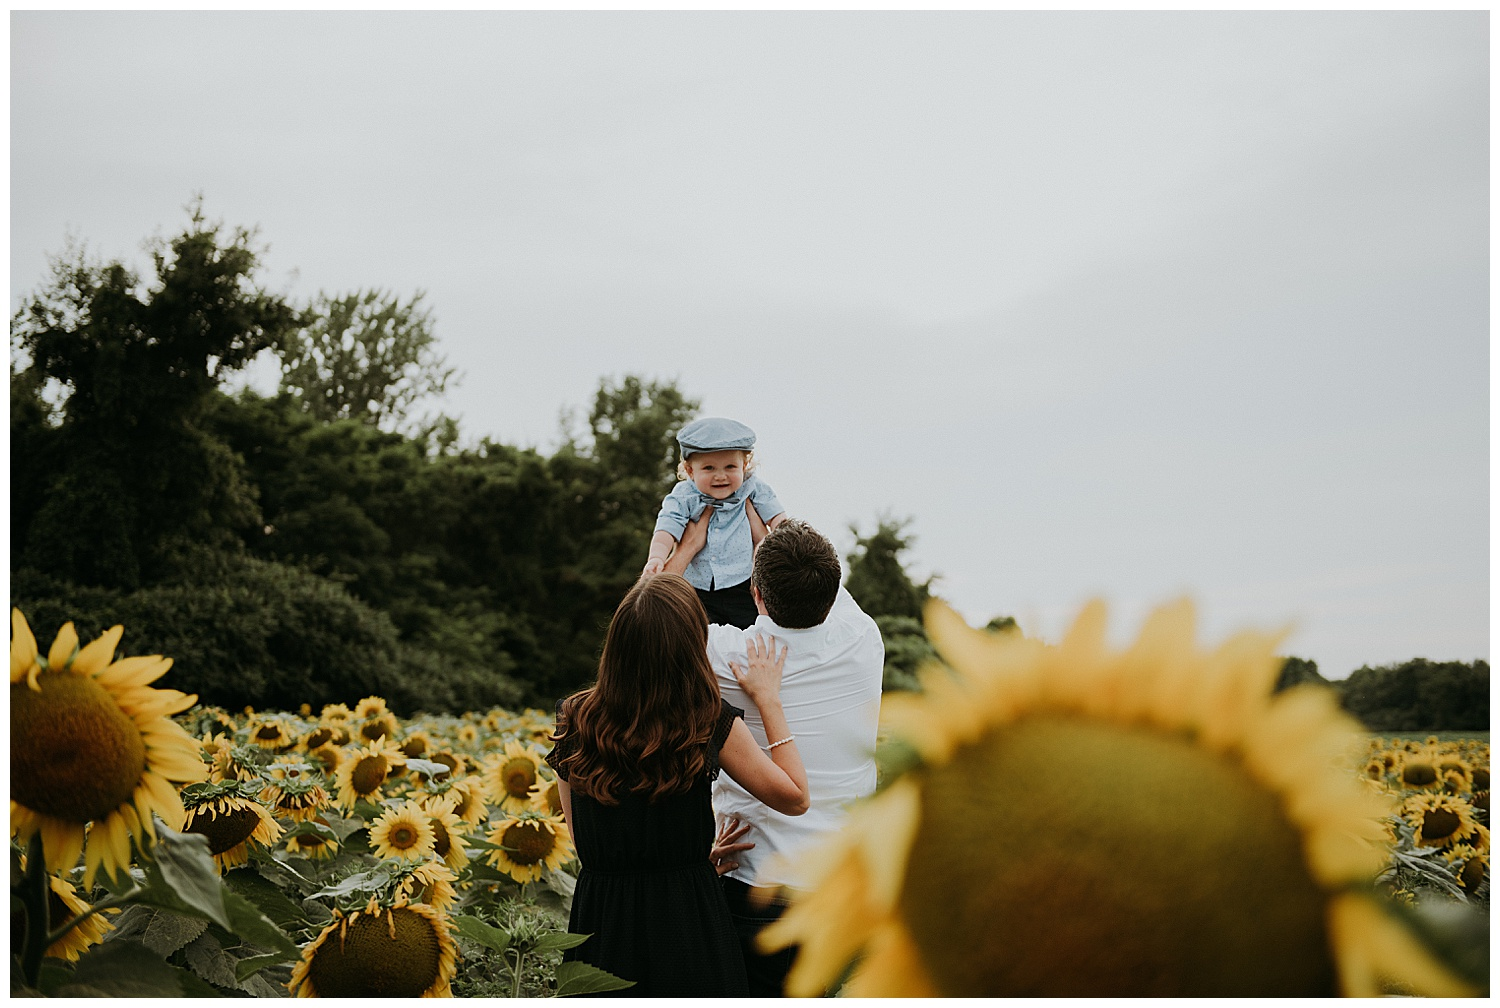 Holly McMurter Photographs | Prince Edward County Sunflower Family Session_0002.jpg